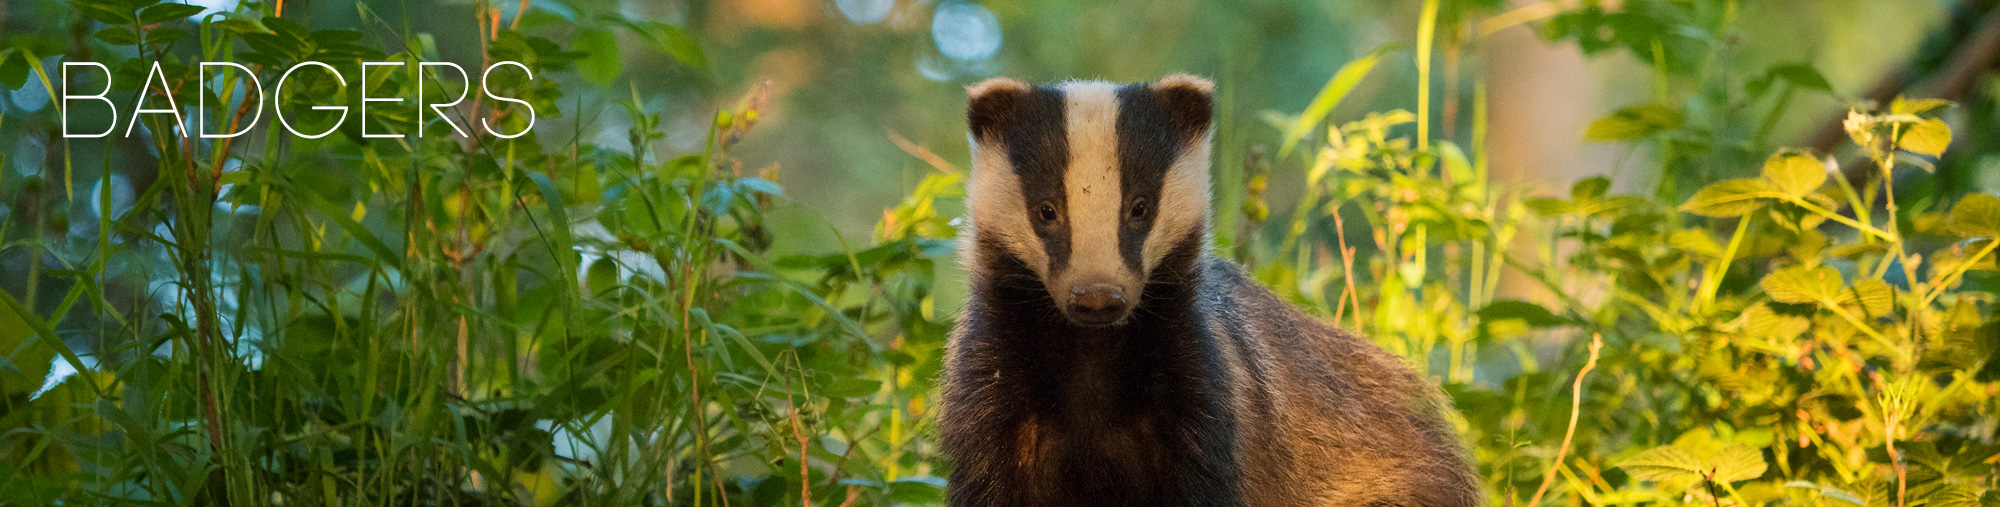 Badger Wildlife Photography Peak District National Park Derbyshire